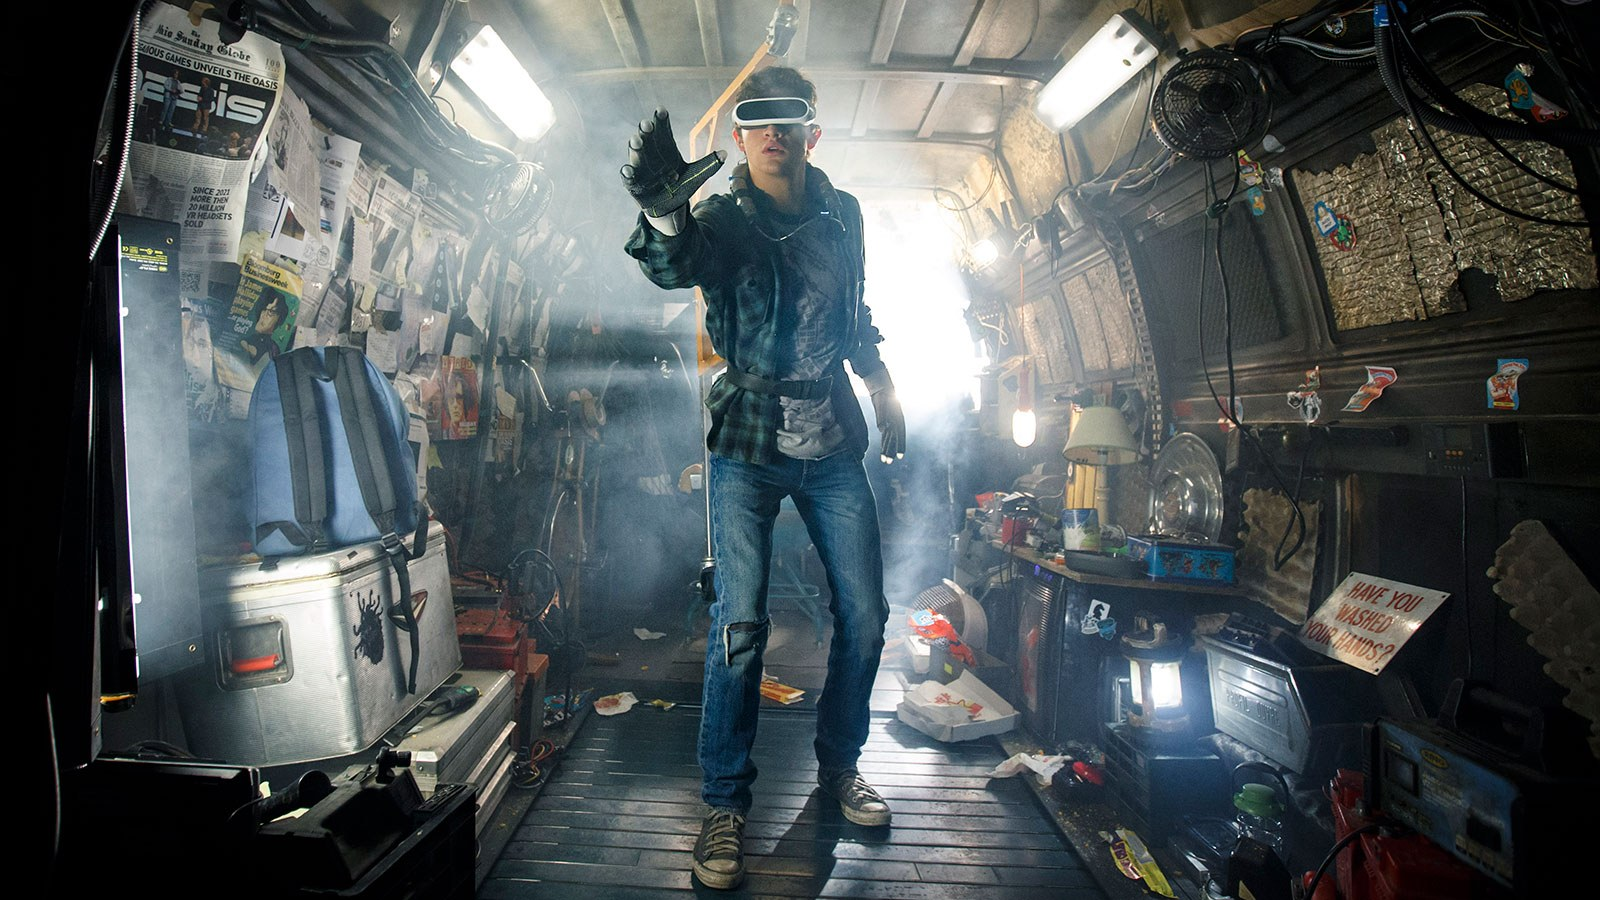 16 Full Sail Grads Work on 'Ready Player One' - Hero image